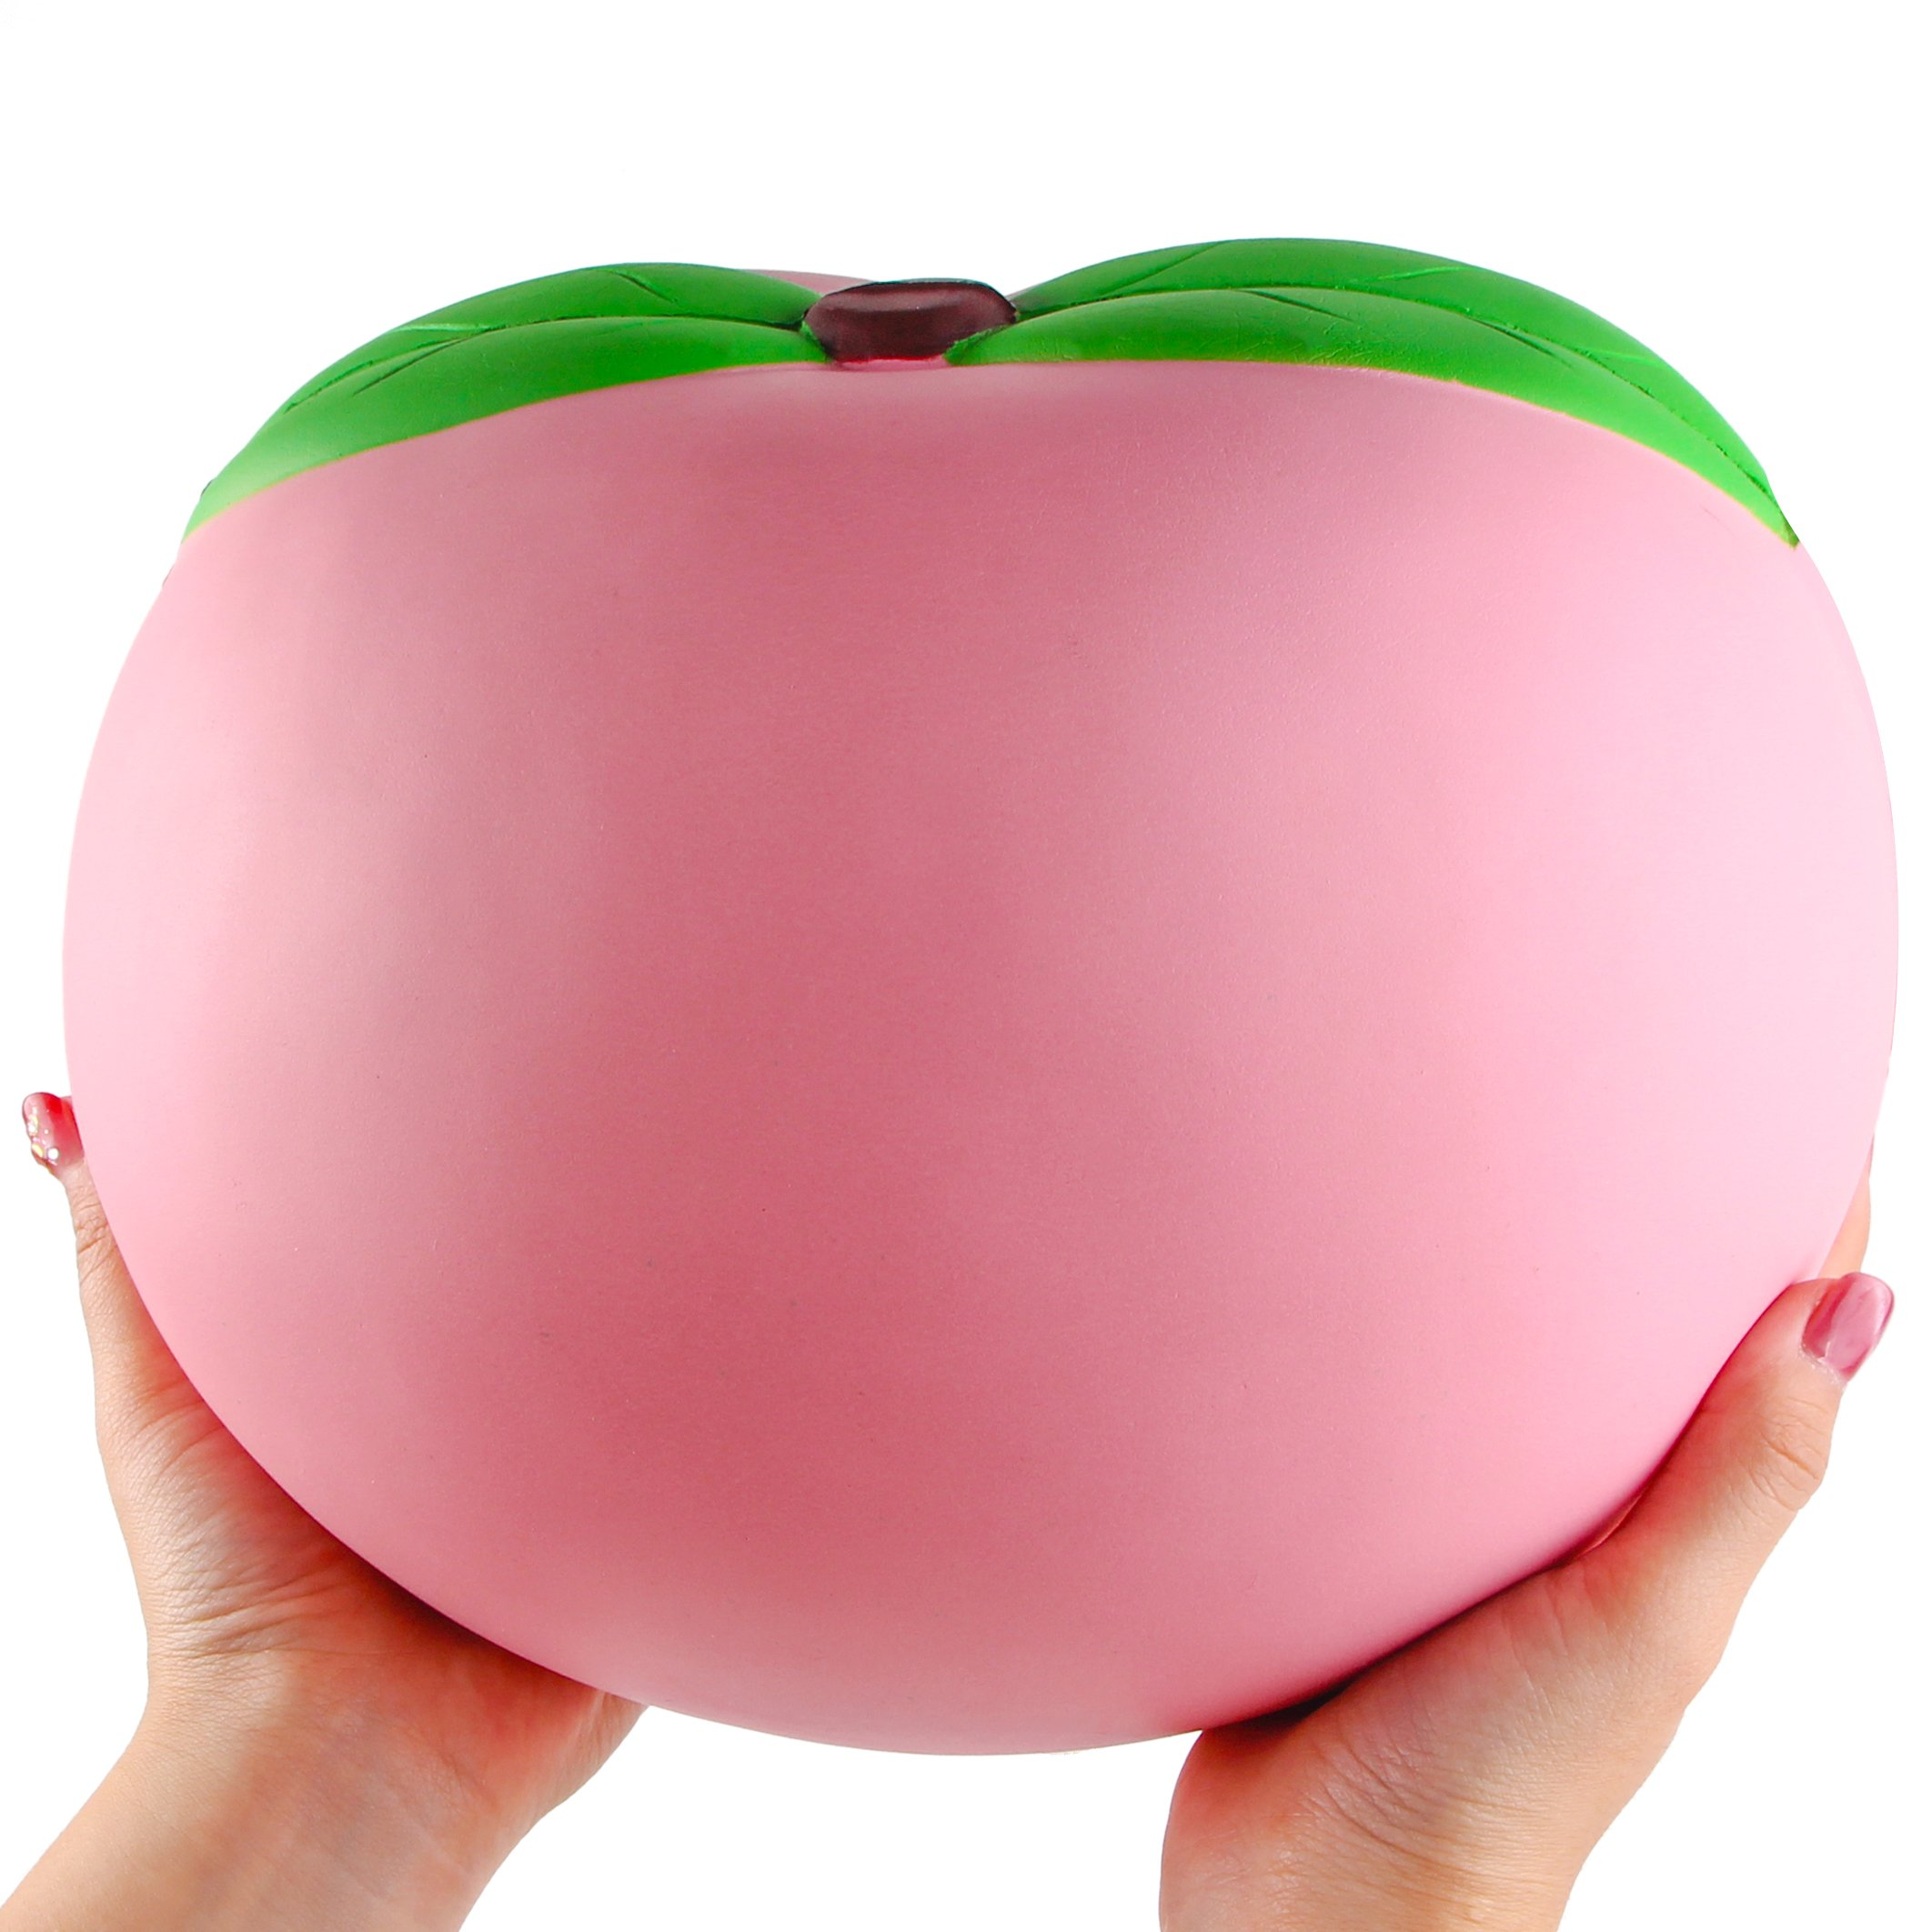 WATINC 10inch Jumbo Squishies, Large Peach Squishies, Birthday Gift for Kids, Giant Slow Rising Simulation Cute Fruit Squeeze Toy for Collection, Decorative Props, Stress Relief, Bonus Emoji squishies by WATINC (Image #3)